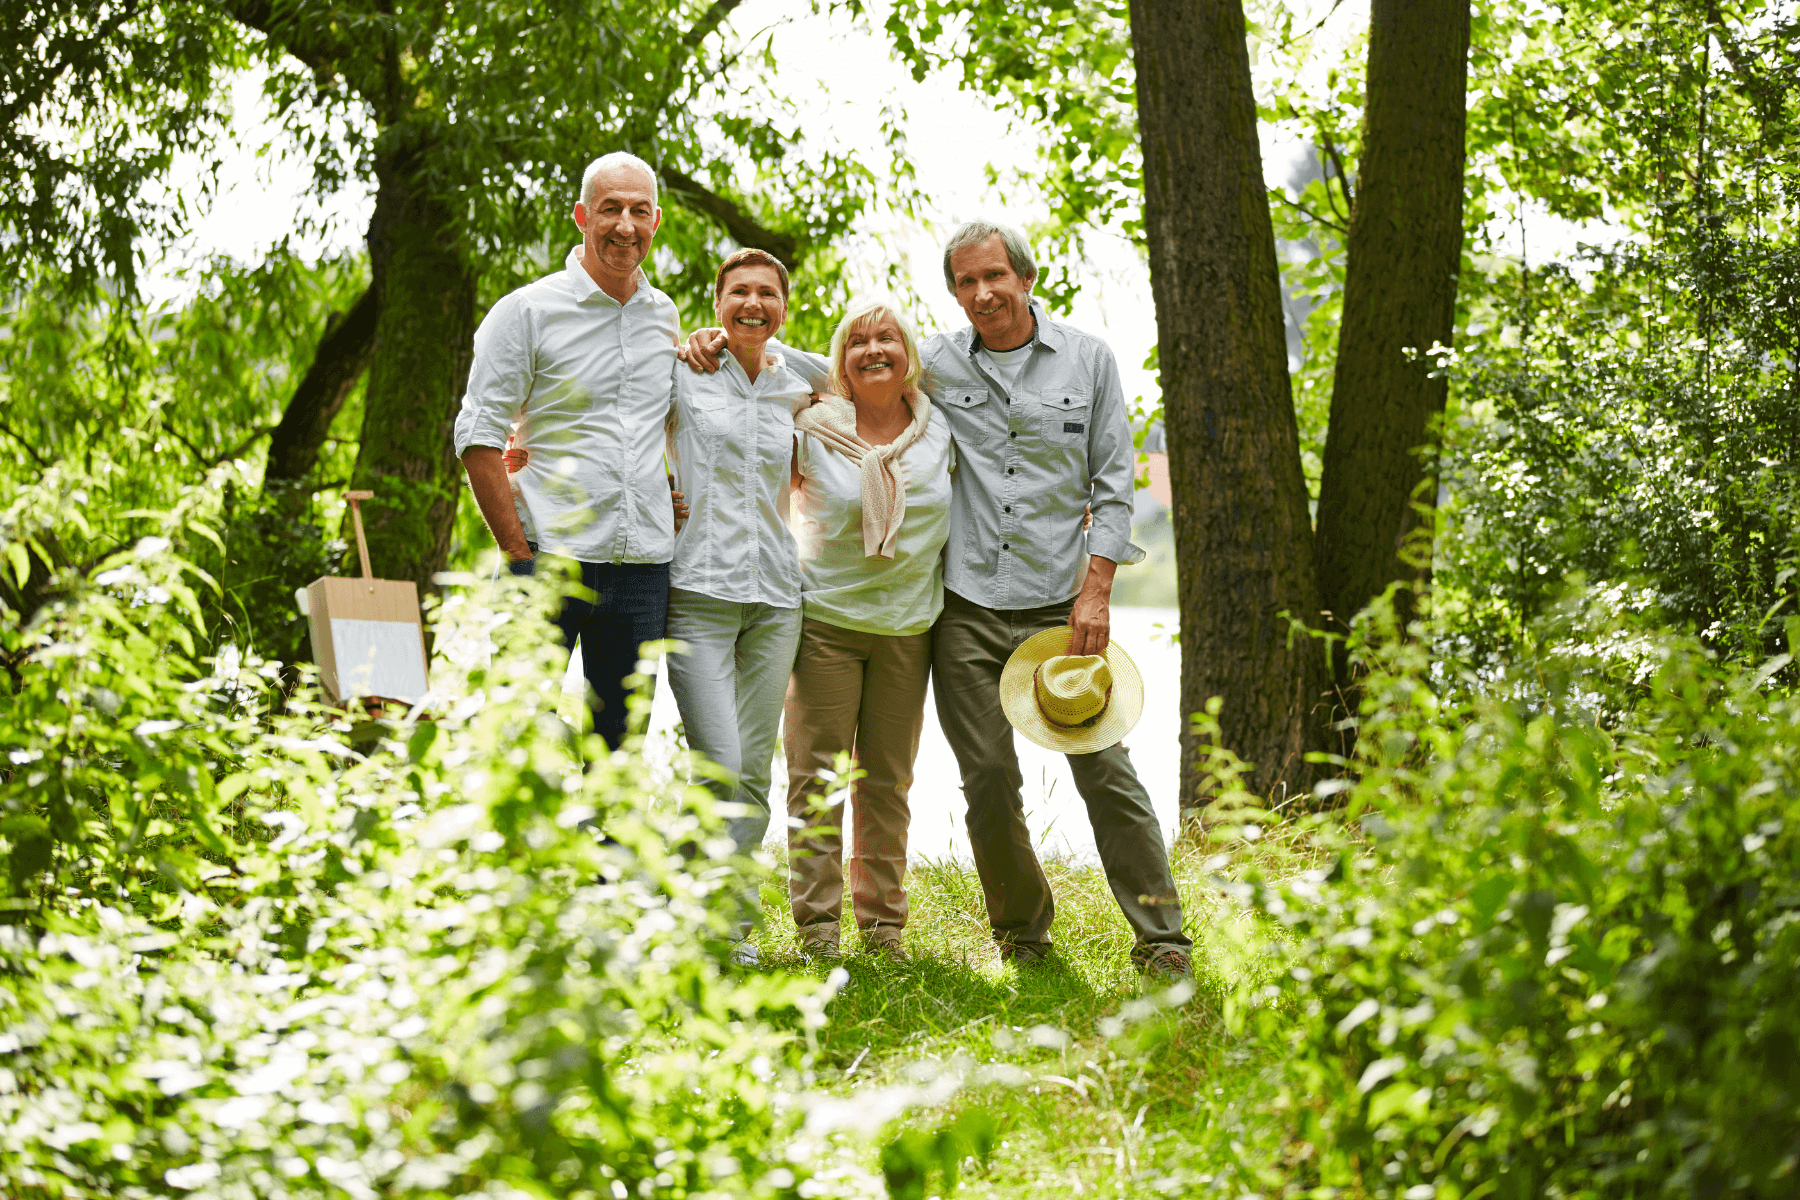 5 Tips For Getting Out in Nature For Seniors